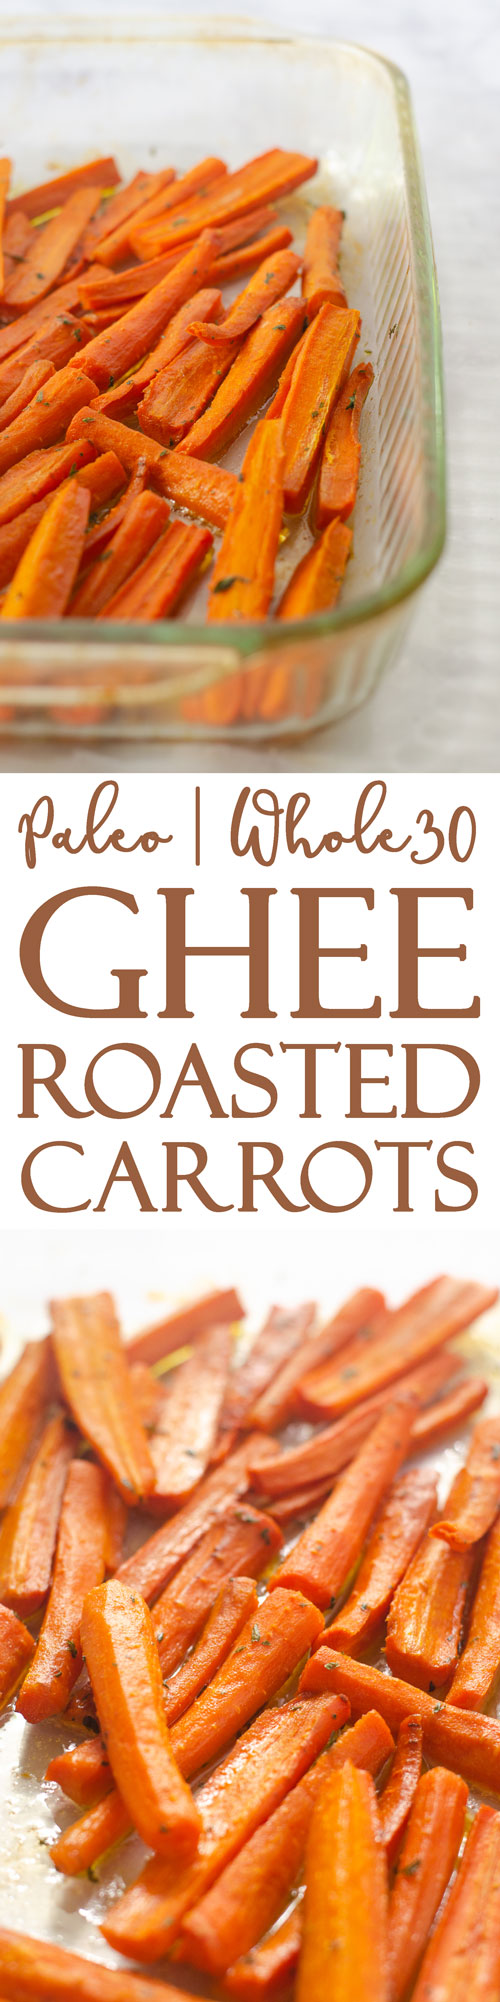 These delicious ghee roasted carrots are both healthy and delicious, a winning combination! Great for those following a paleo or bulletproof diet or on a round of Whole30. Perfect for any dinner ranging from a super-casual BBQ to a formal Thanksgiving dinner!